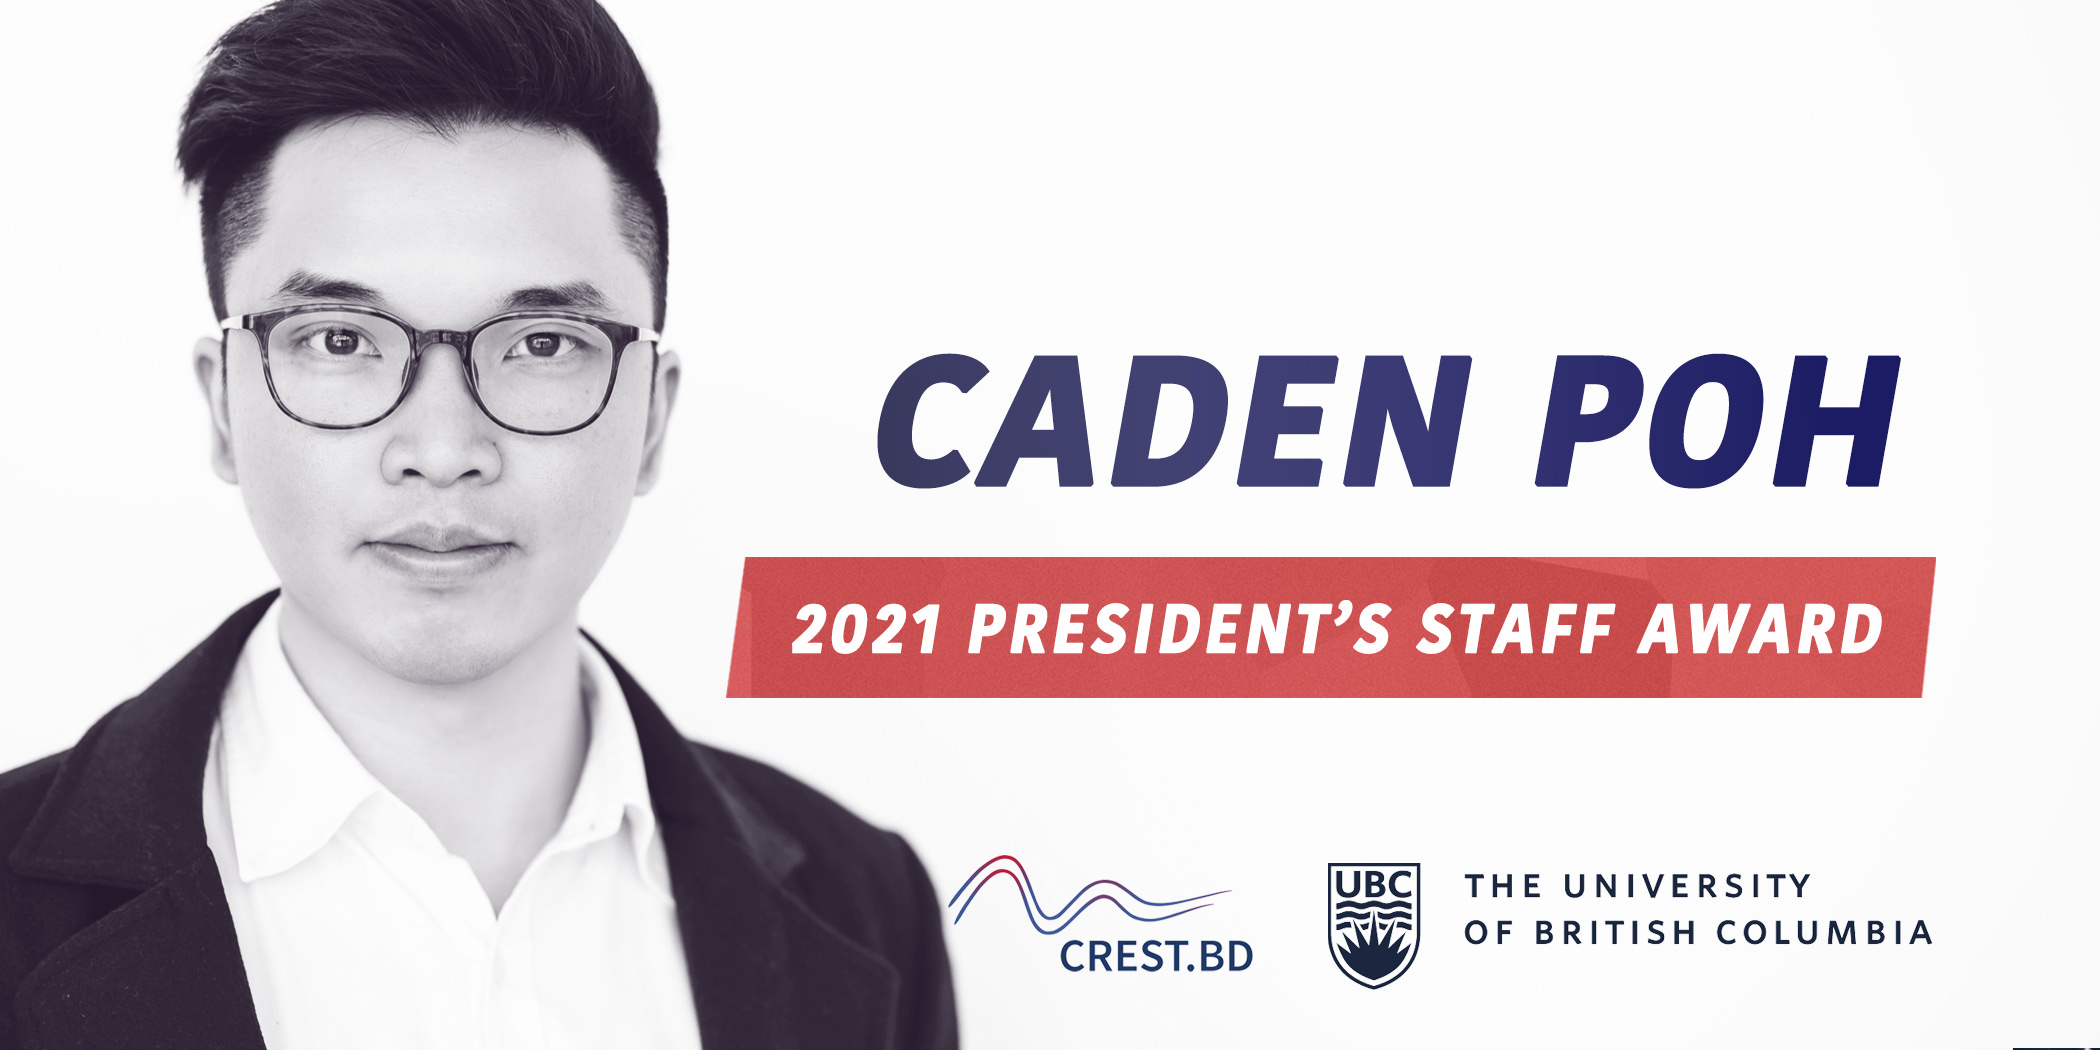 Congratulations to Caden Poh for receiving the UBC President's Staff Award!